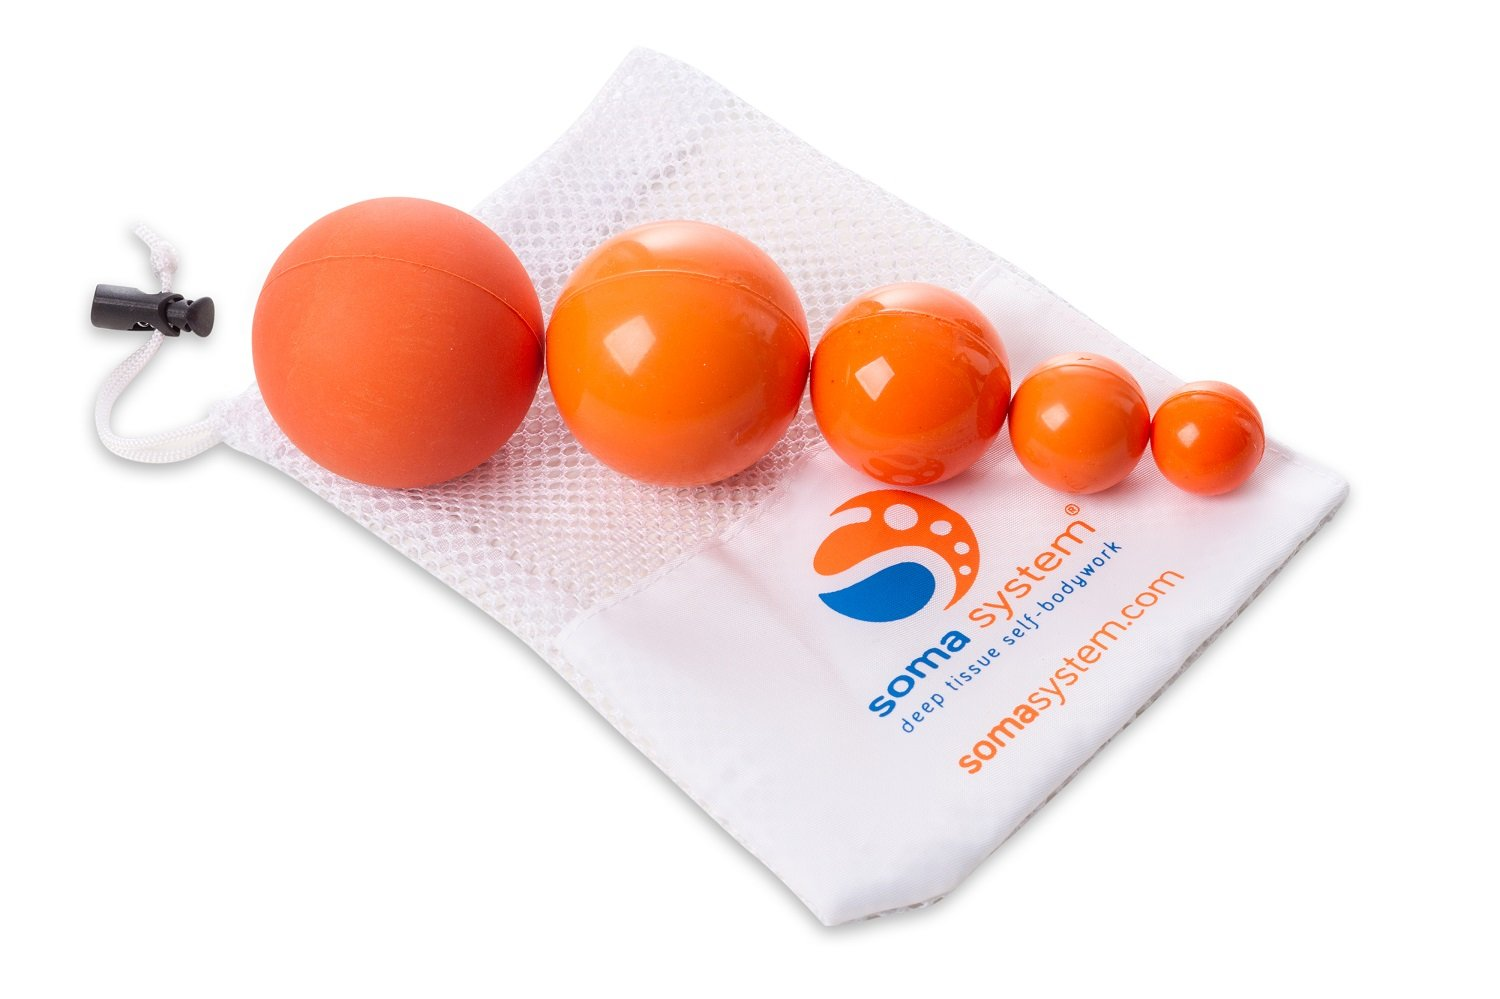 Soma System Massage Therapy Ball Set for Deep Tissue Self-Massage, Myofascial Release, and Trigger Point Therapy. Great for Melt Method, Yoga Tune Up, and Yamuna BodyRolling